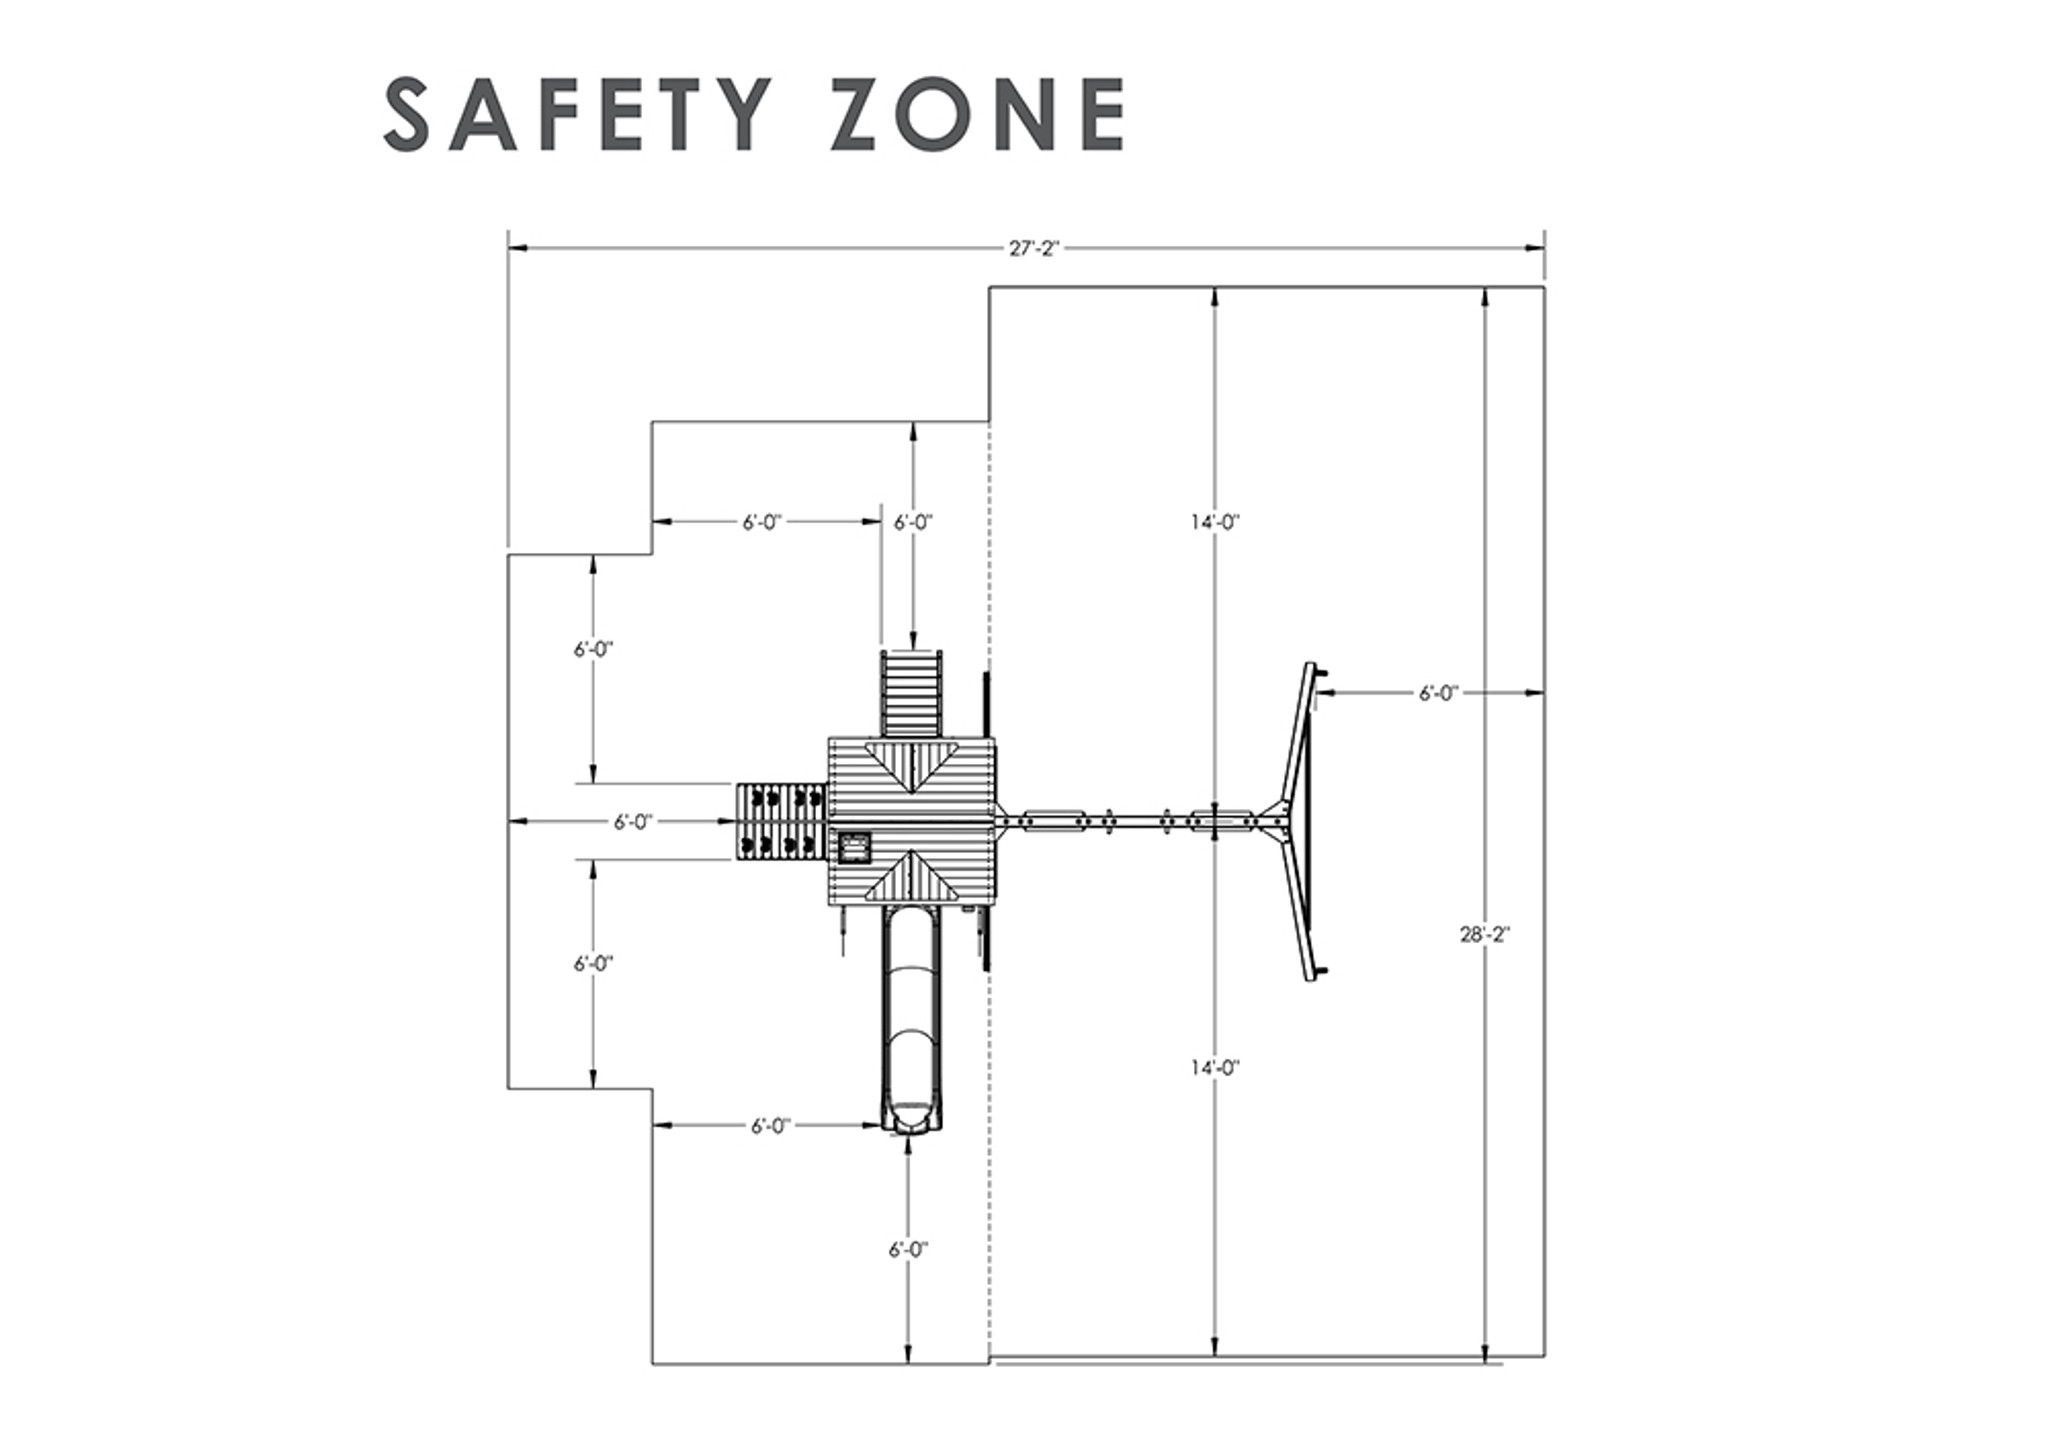 Safety Zone view of Nantucket II Play Set from Playnation